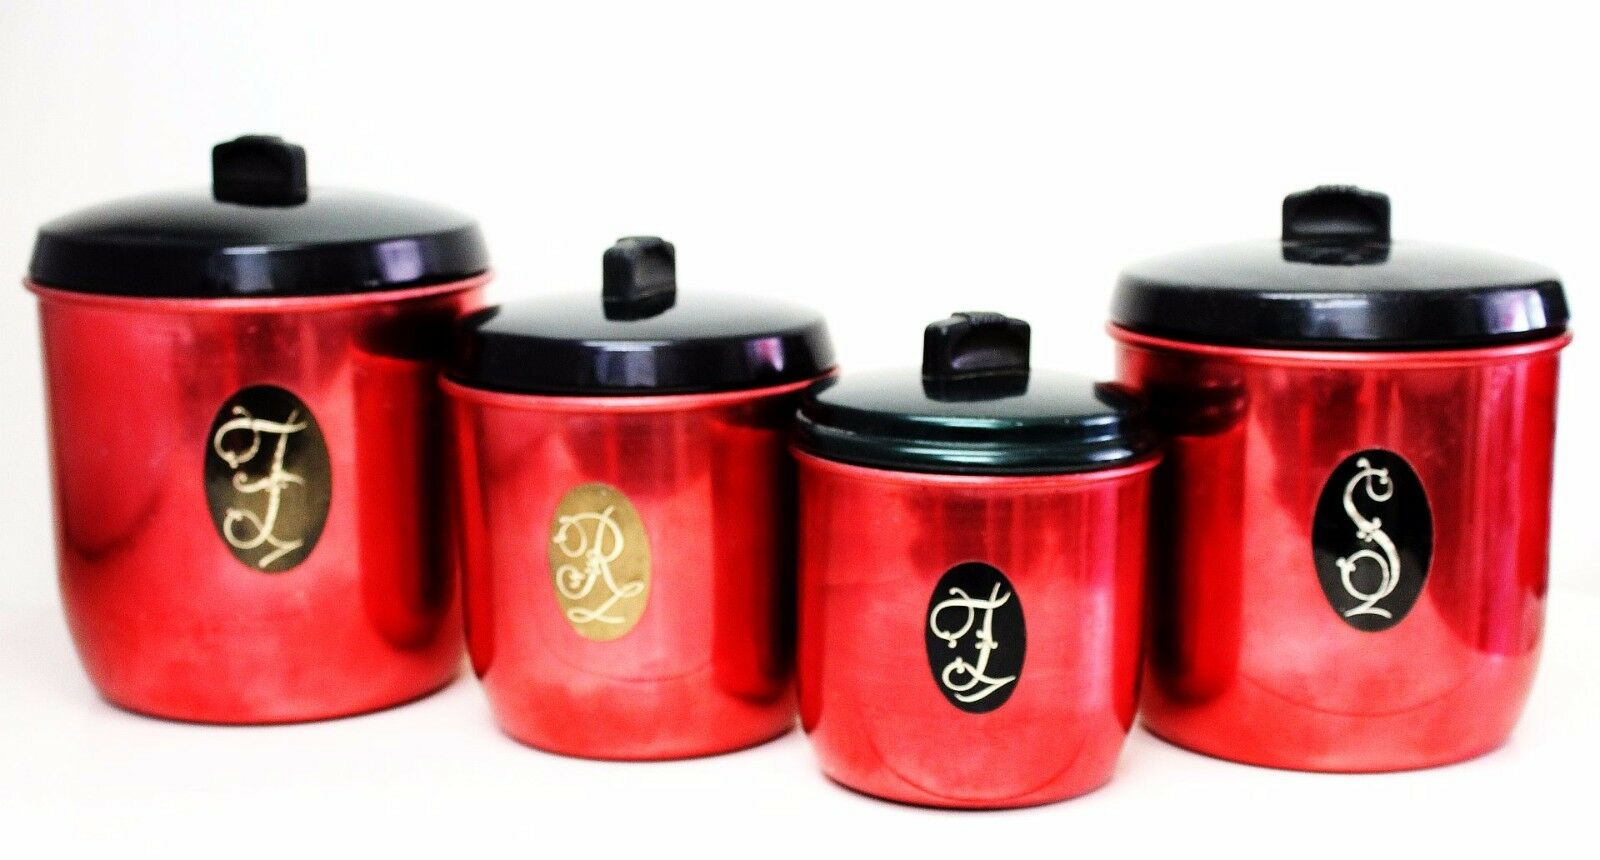 Vintage canister set red anodised aluminium retro for Kitchen set red